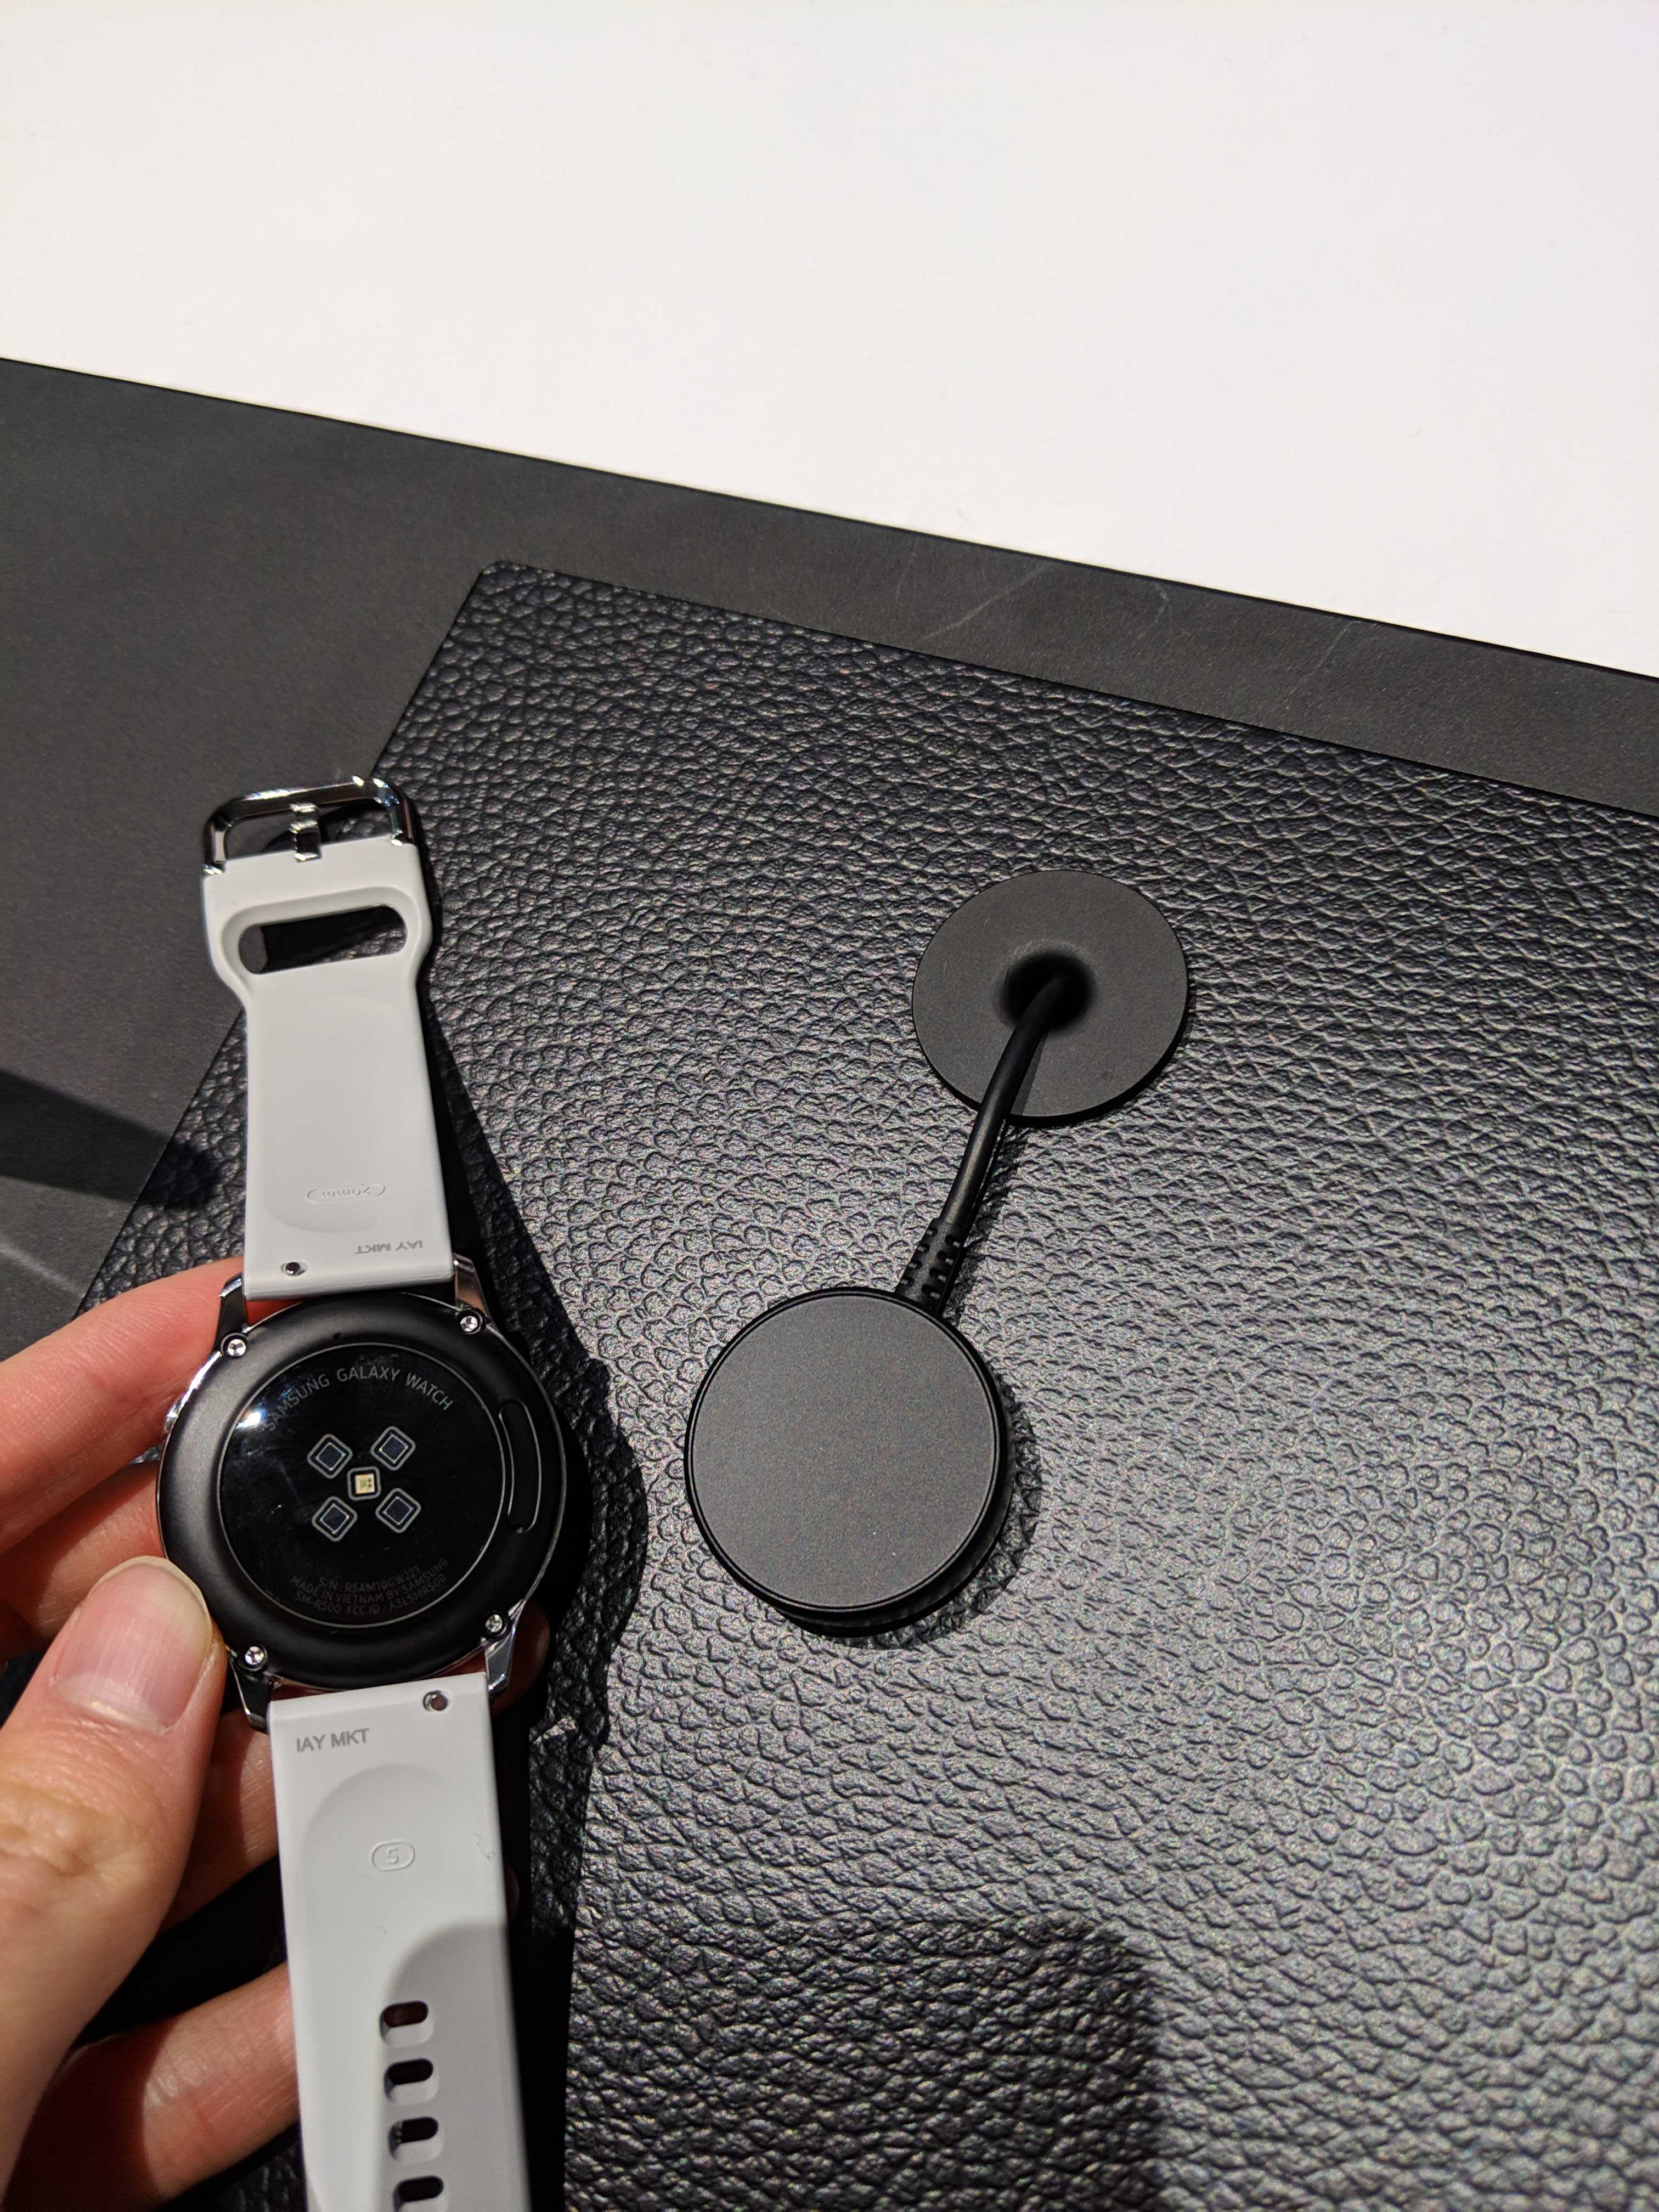 3abfba15da2274 Galaxy Watch Active tidbits: Downgraded charger, blood pressure details,  colors, more